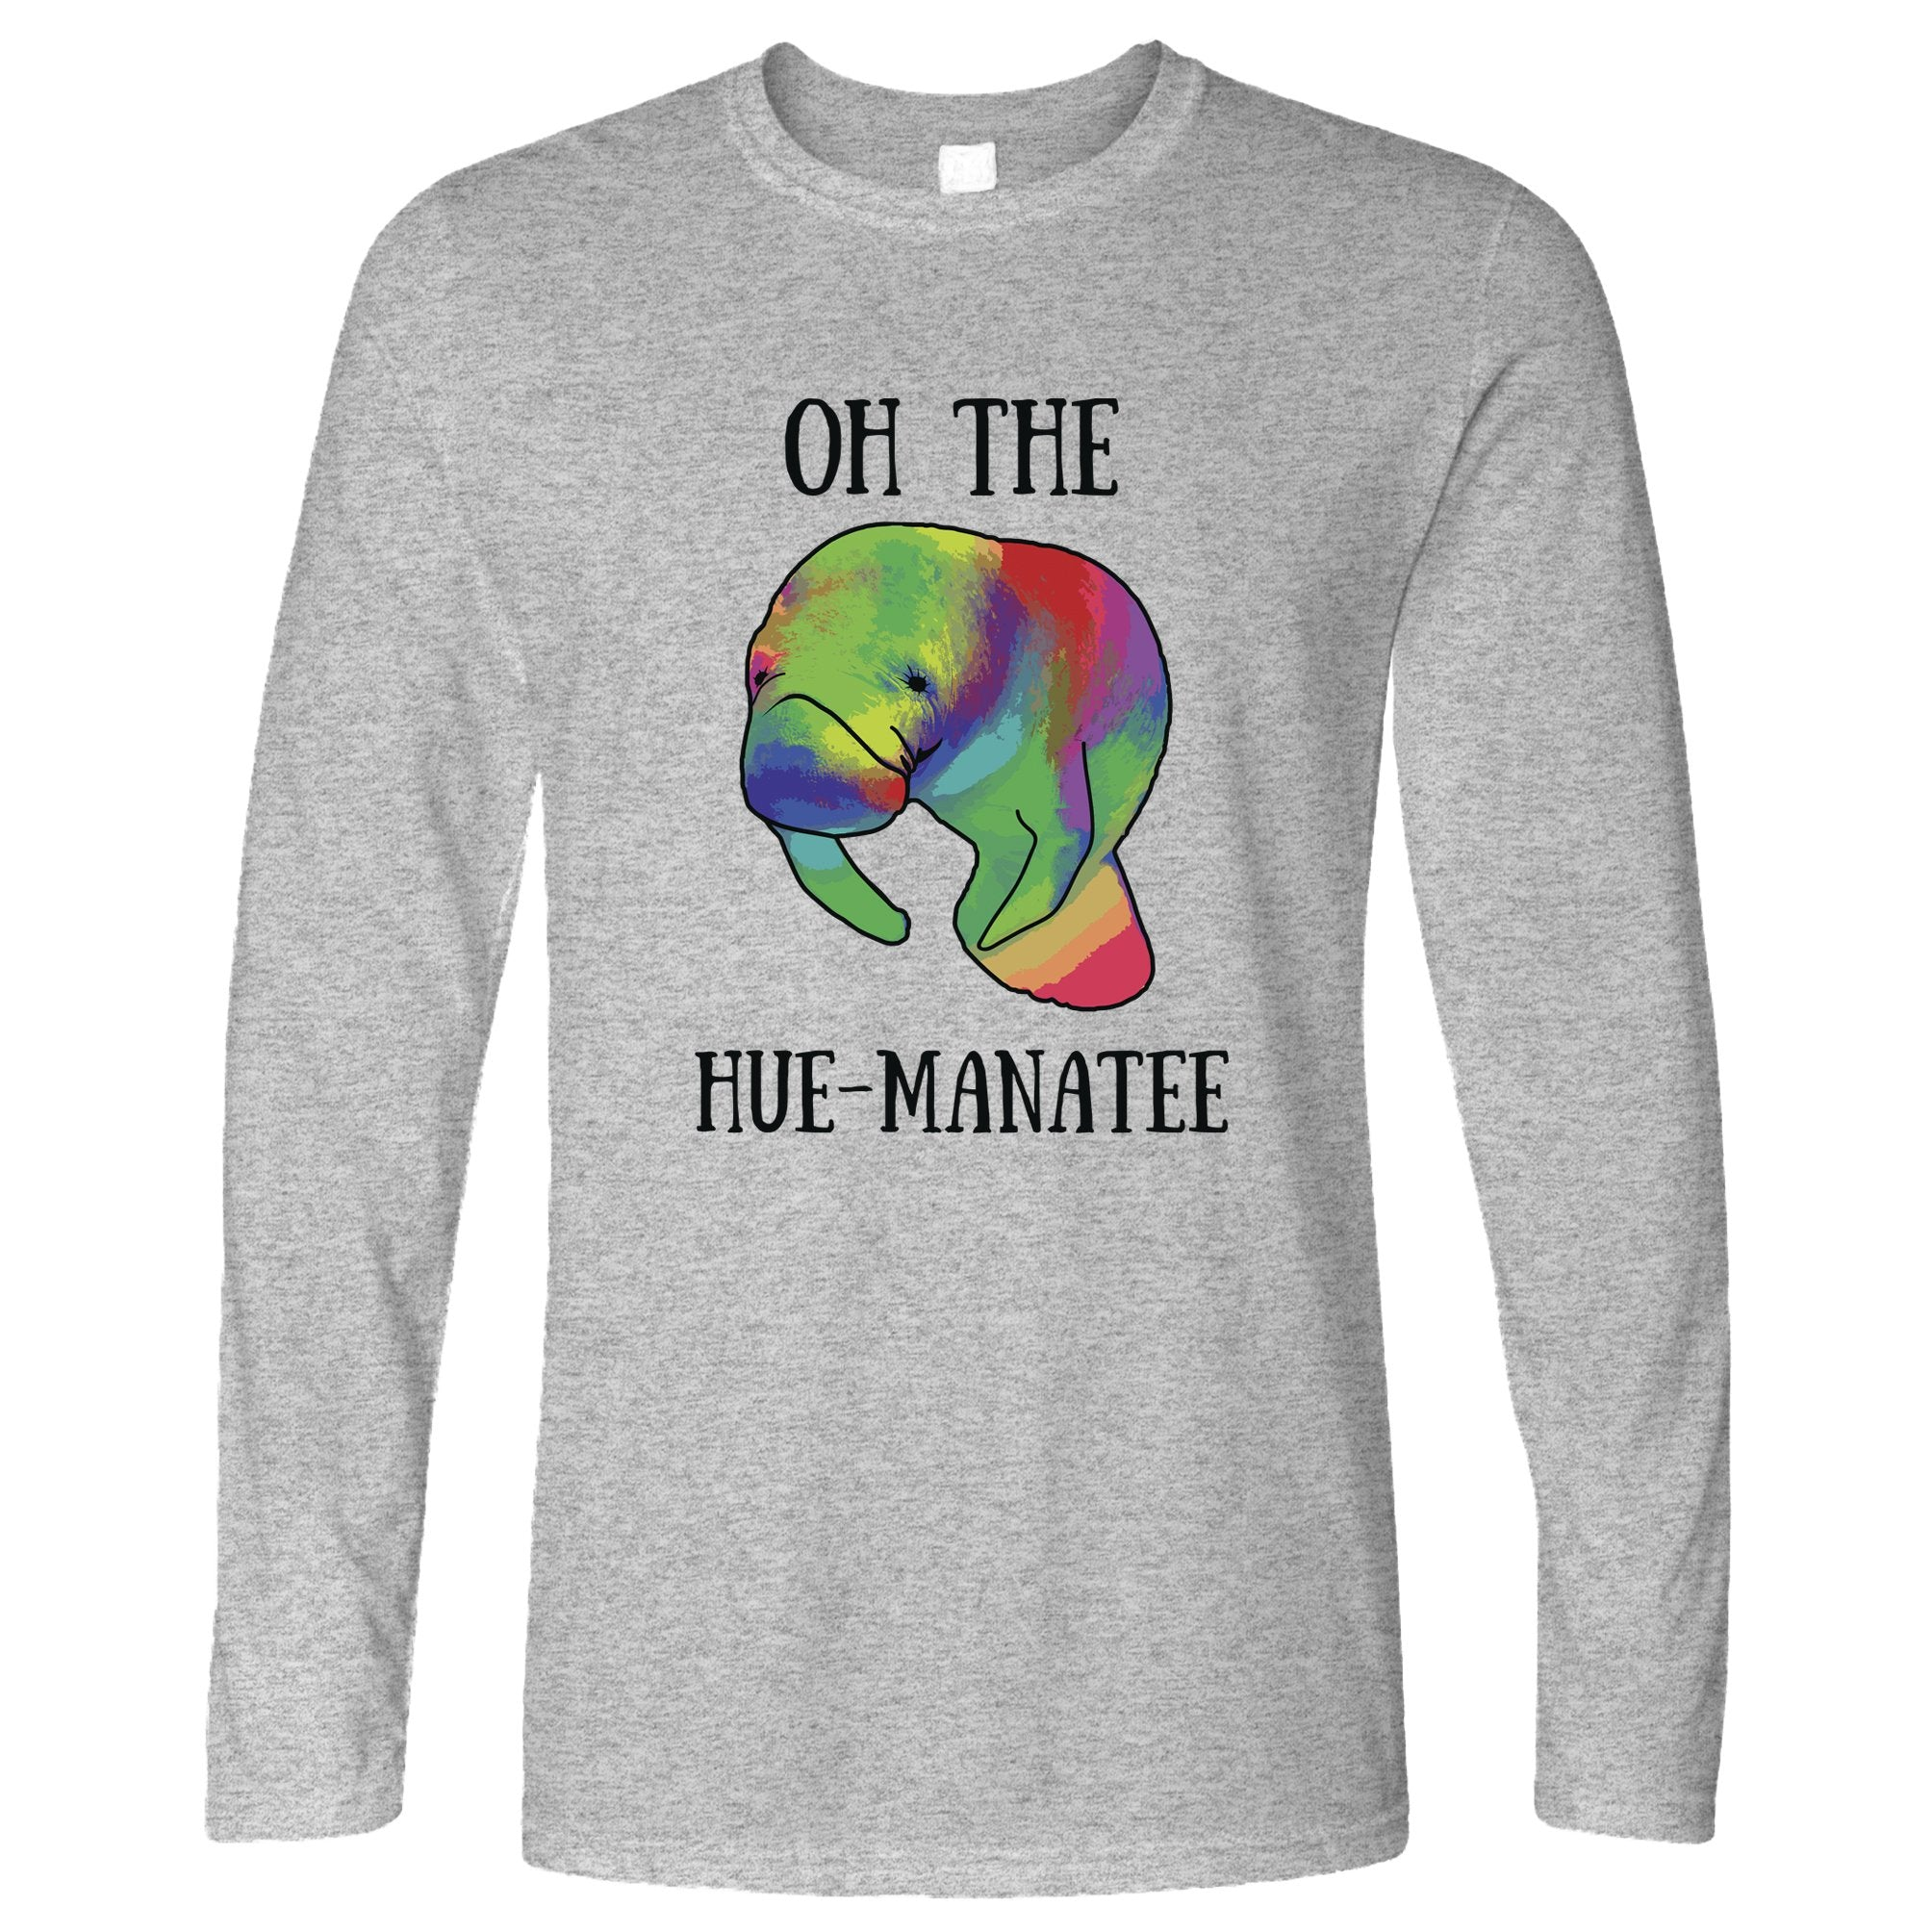 Novelty Pun Long Sleeve Oh The Hue-Manatee Humanity T-Shirt